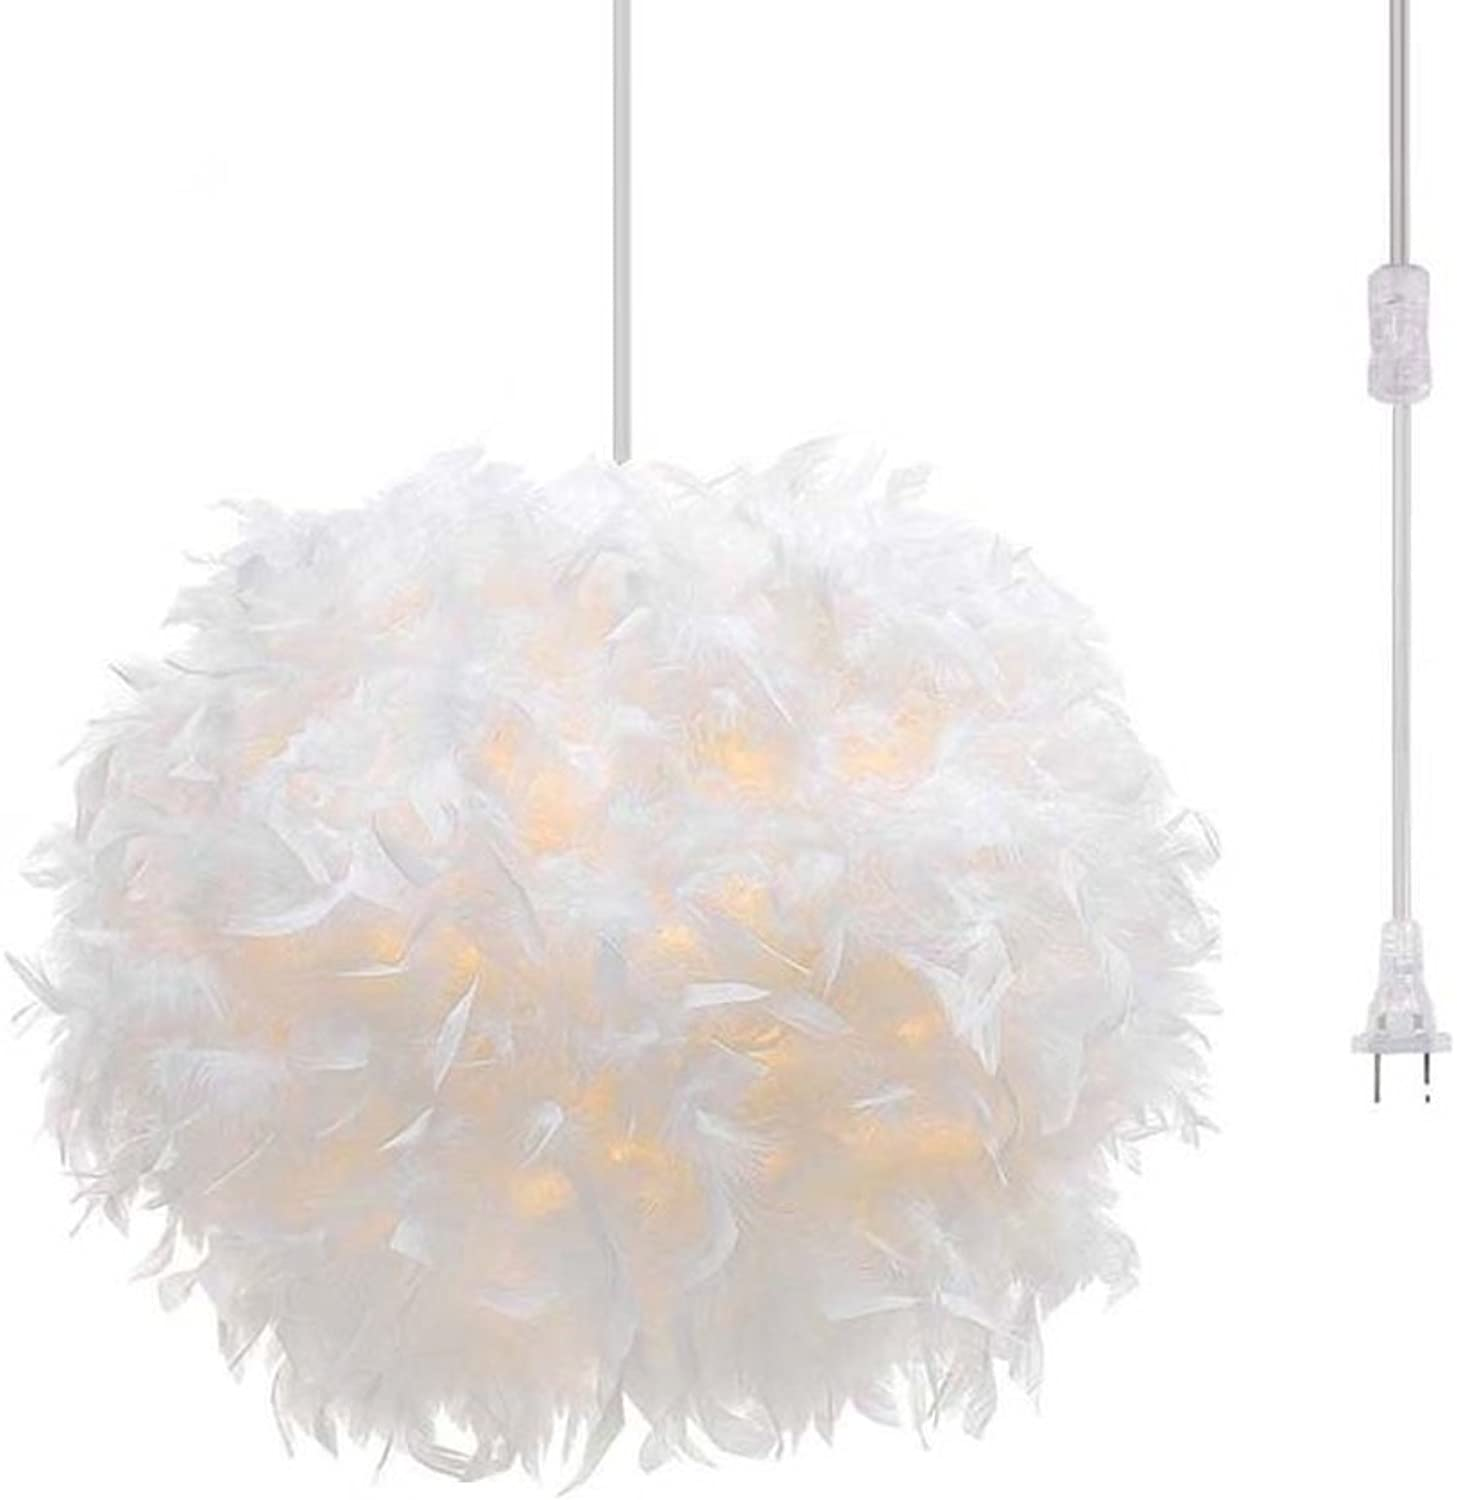 Surpars House Plug in Pendant Light White Feather Chandelier with 17' Cord and On off Switch in Line